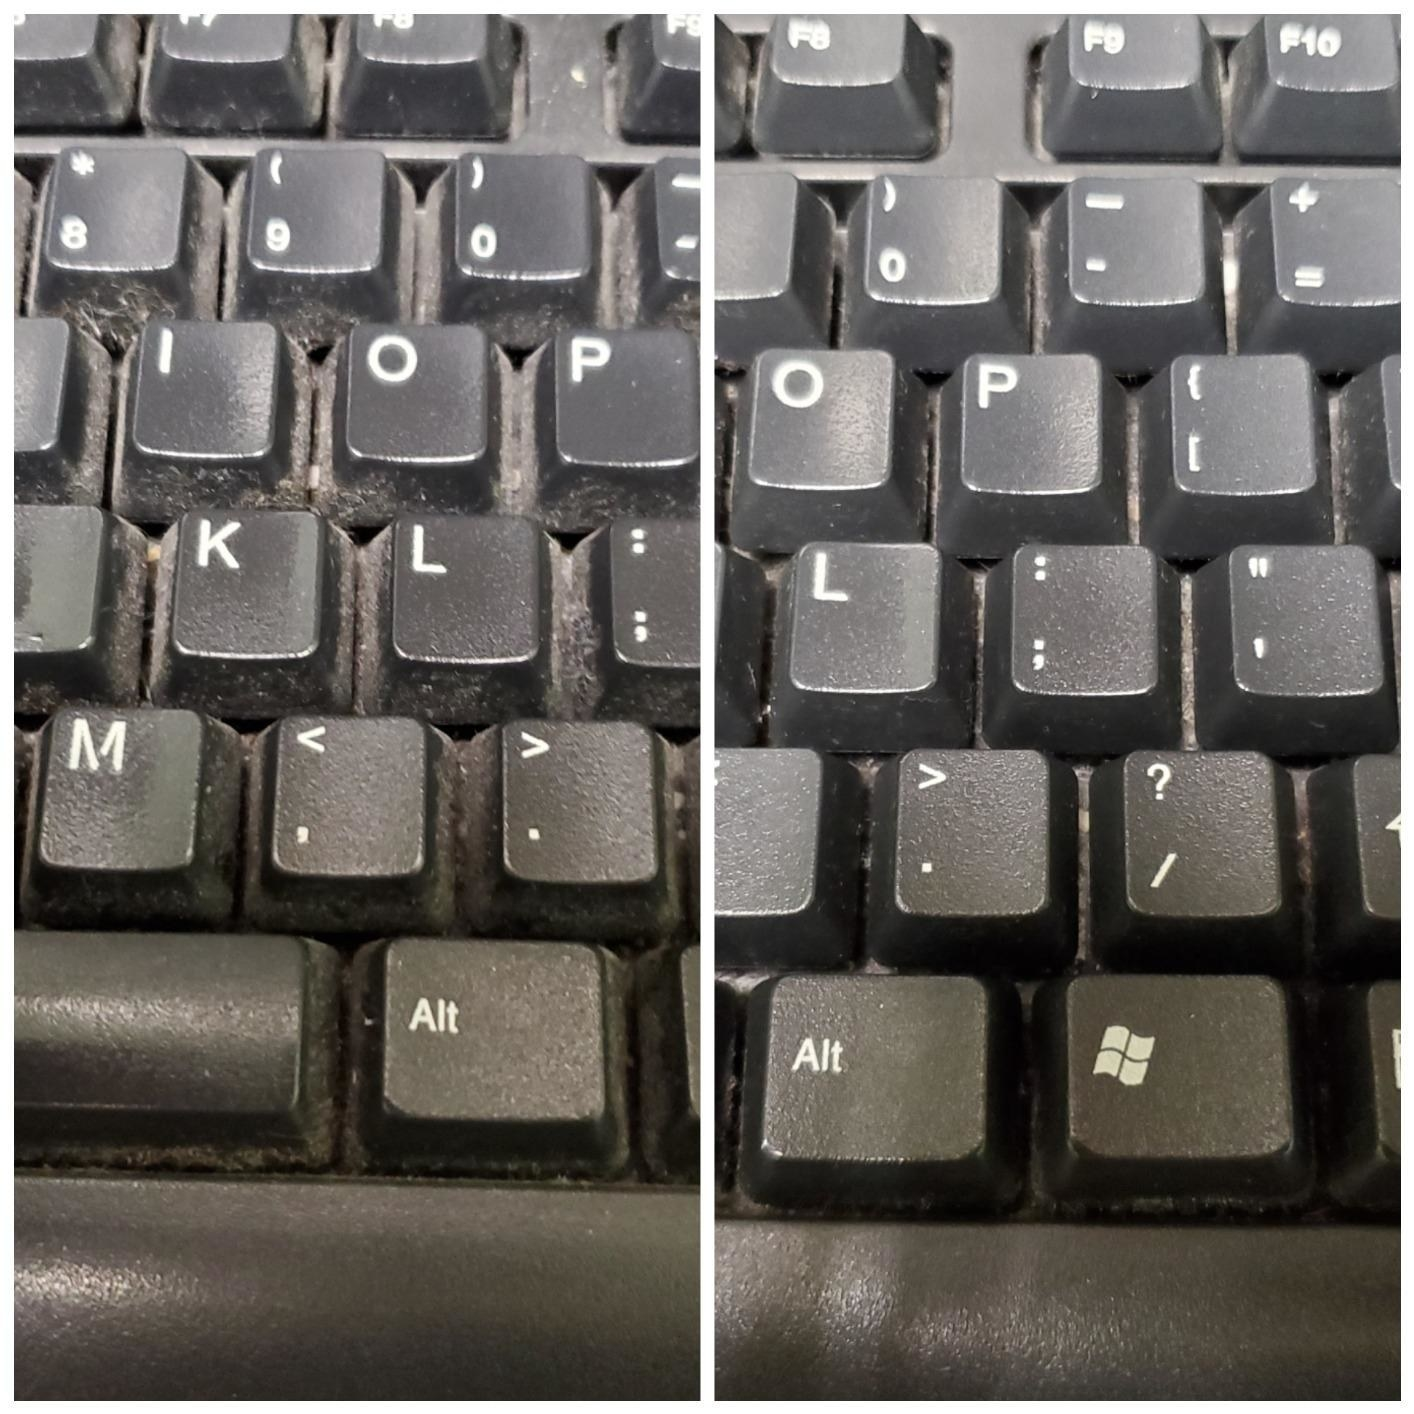 A before and after of a reviewer's keyboard caked with dust then way less dusty